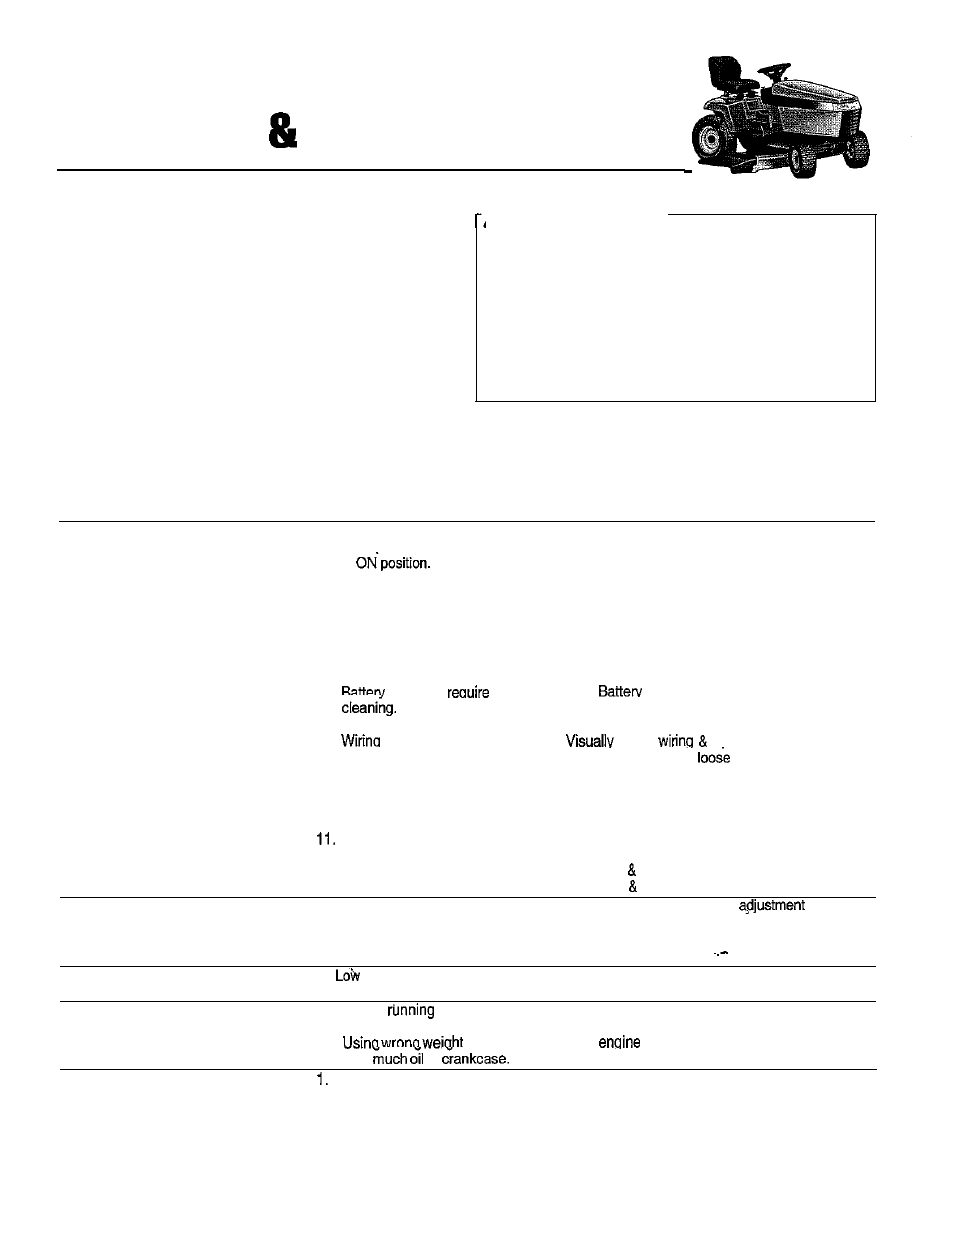 Troubleshooting Adjustment Service Simplicity Tractor Ignition Wiring Diagram The Warning 14hp